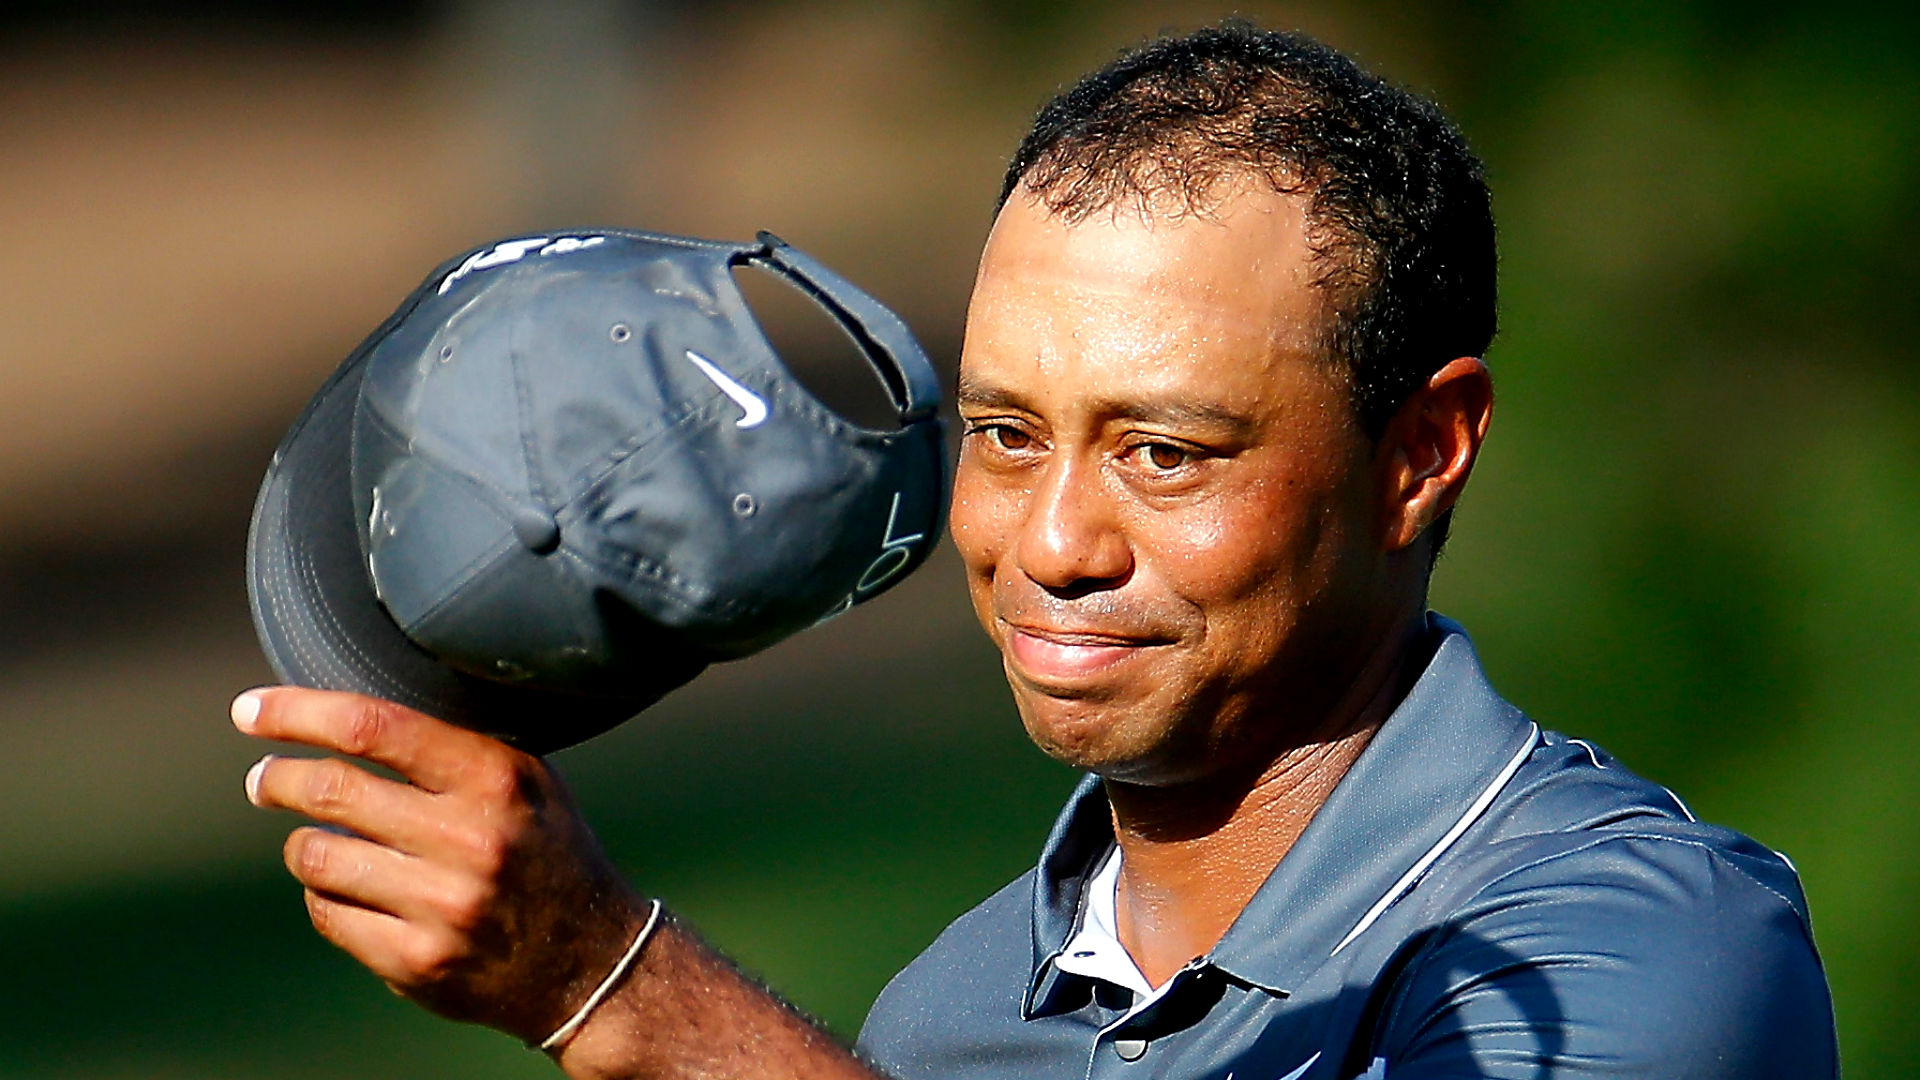 life of tiger woods and his contribution to sports Tiger woods arrested in florida on 'driving under influence' charge ap may 30, 2017 but it was a turning point in my life run by his tiger woods foundation.